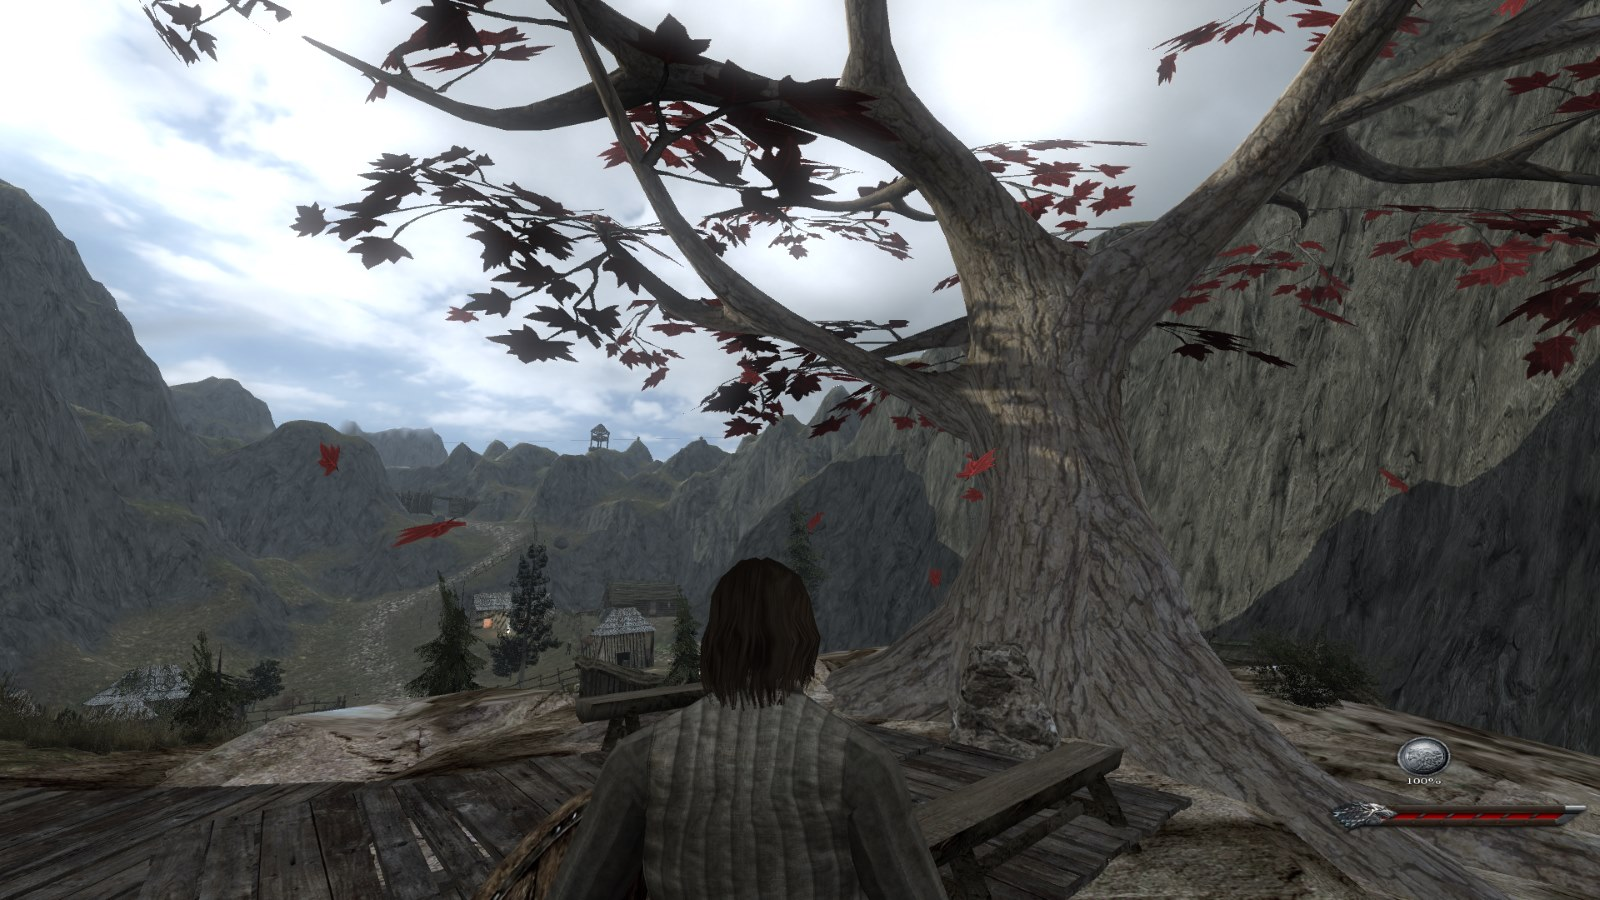 The best Game Of Thrones mods for Mount & Blade Warband